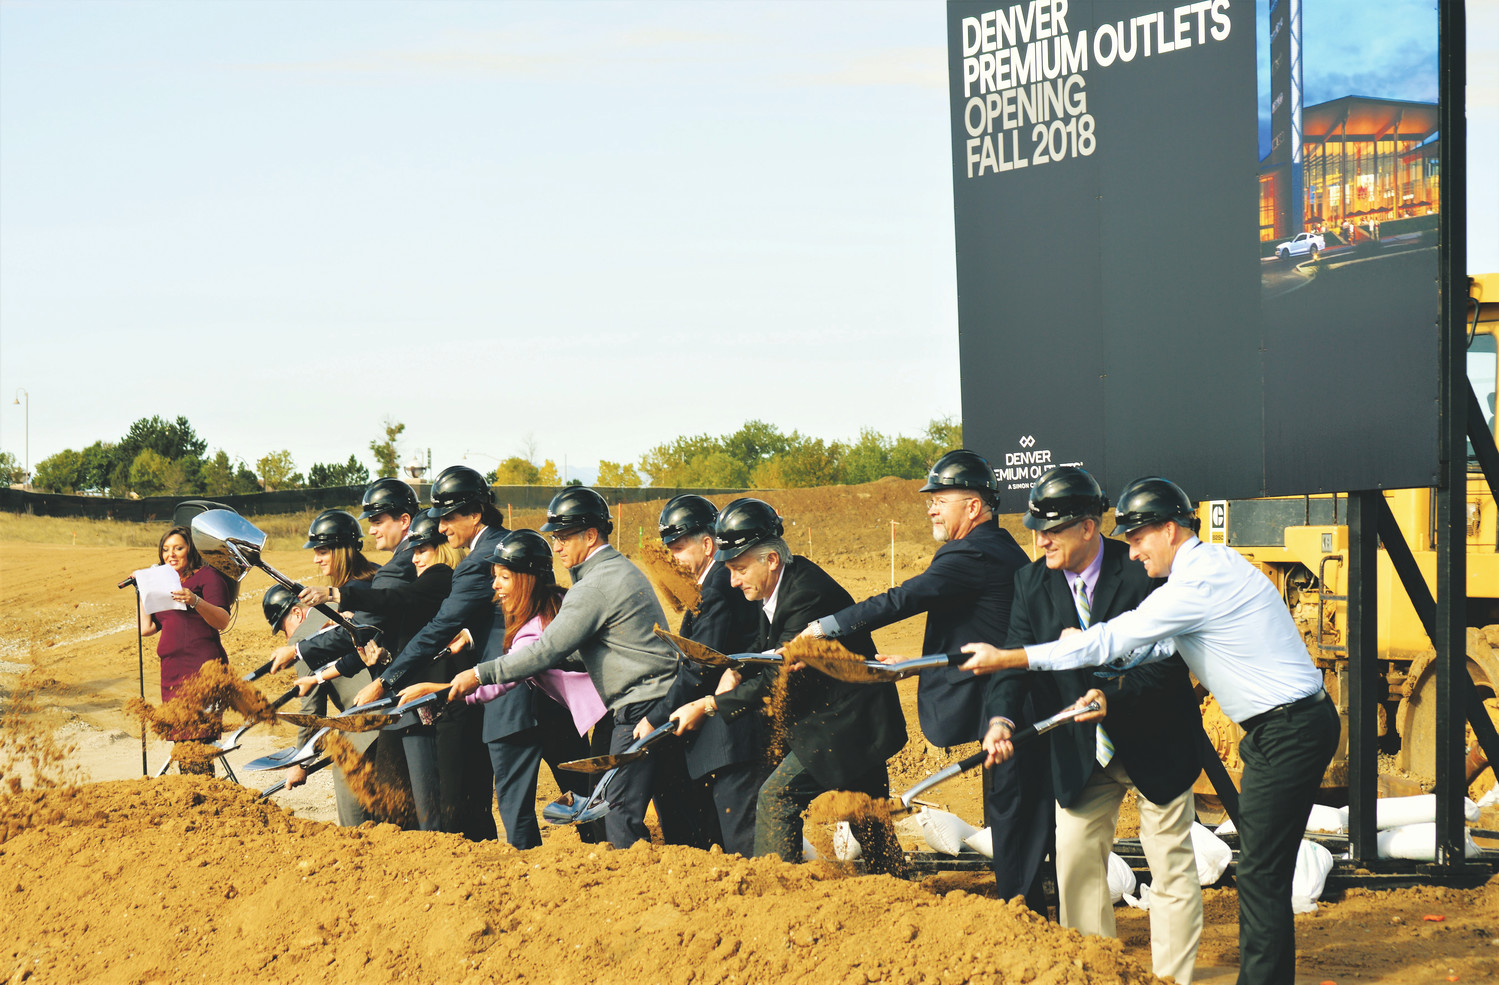 Simon officials join City of Thornton representatives Oct. 6 moving shovels full of dirt at the official groundbreaking of the company's new Premium Outlet mall, at the corner of Interstate 25 and U.S. 36.